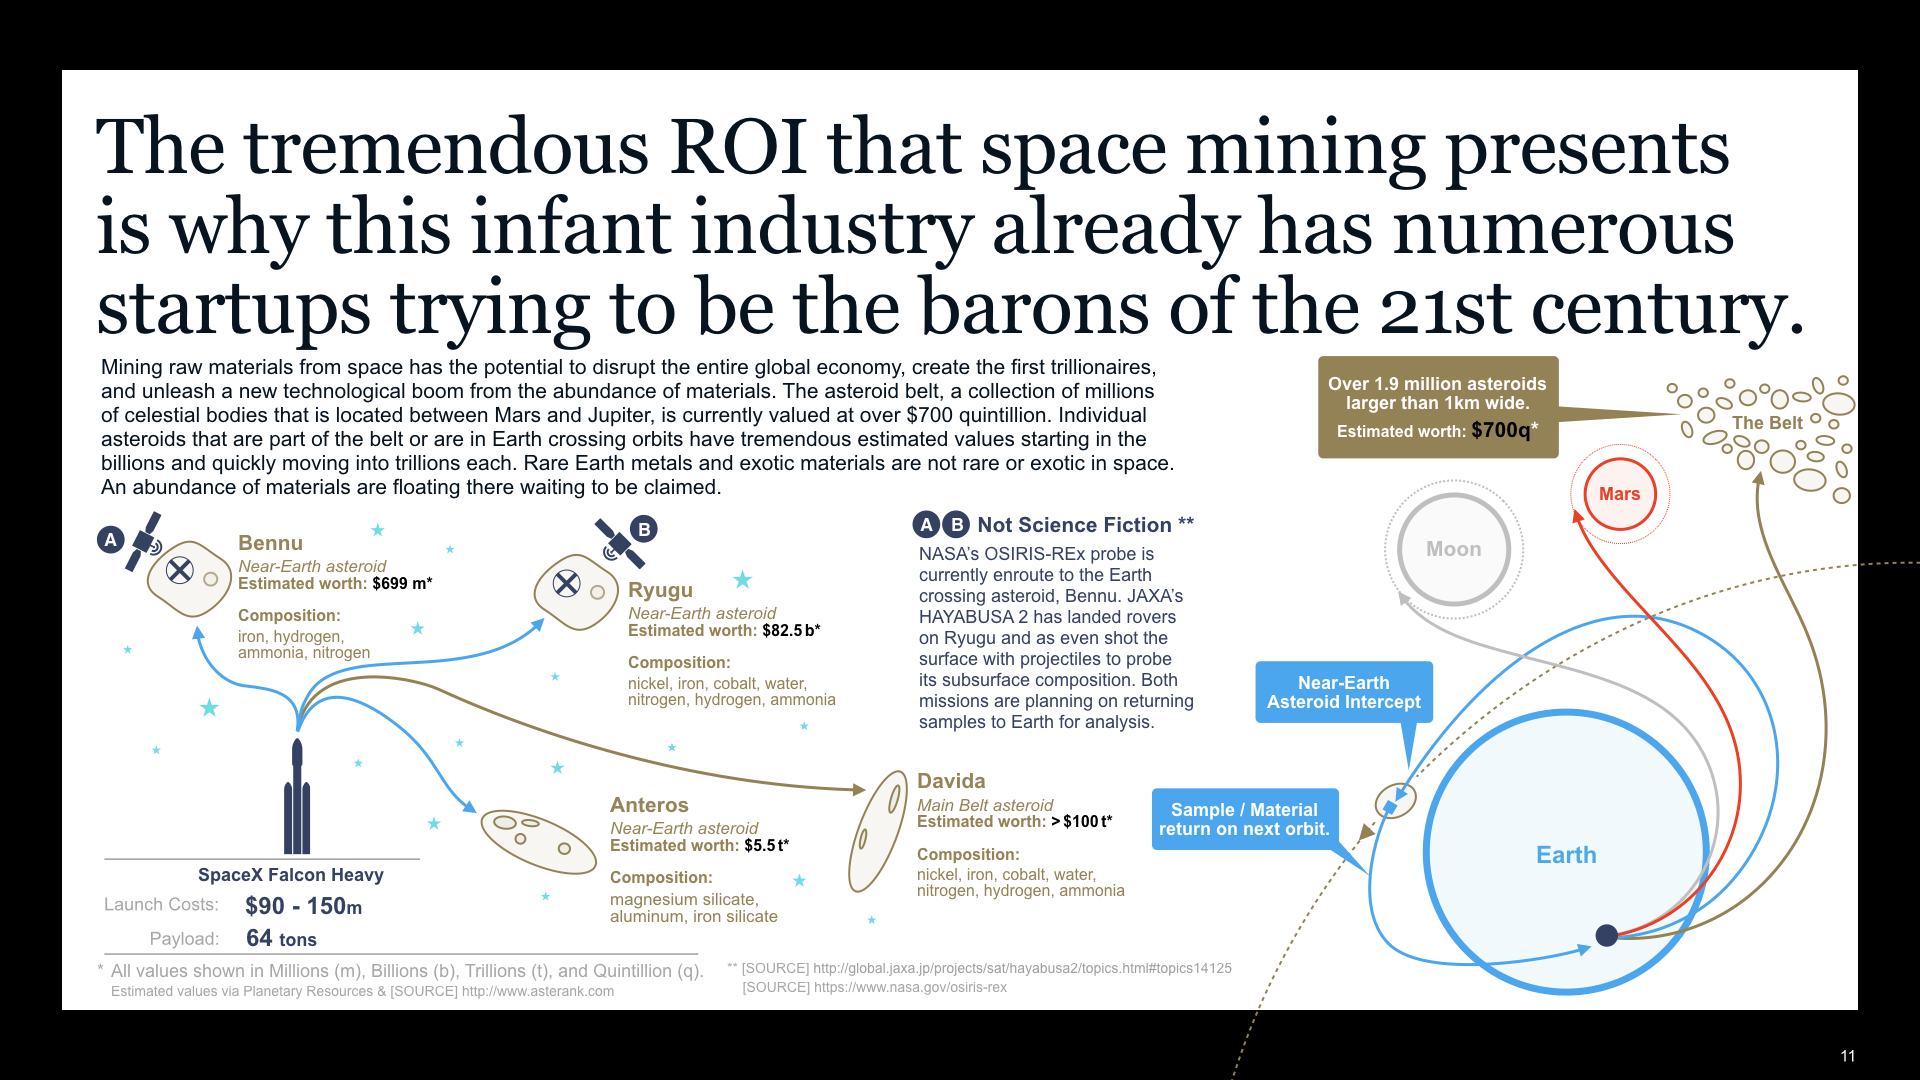 McKinsey_SpaceEconomy2019_MINING_overview_v019.011.png